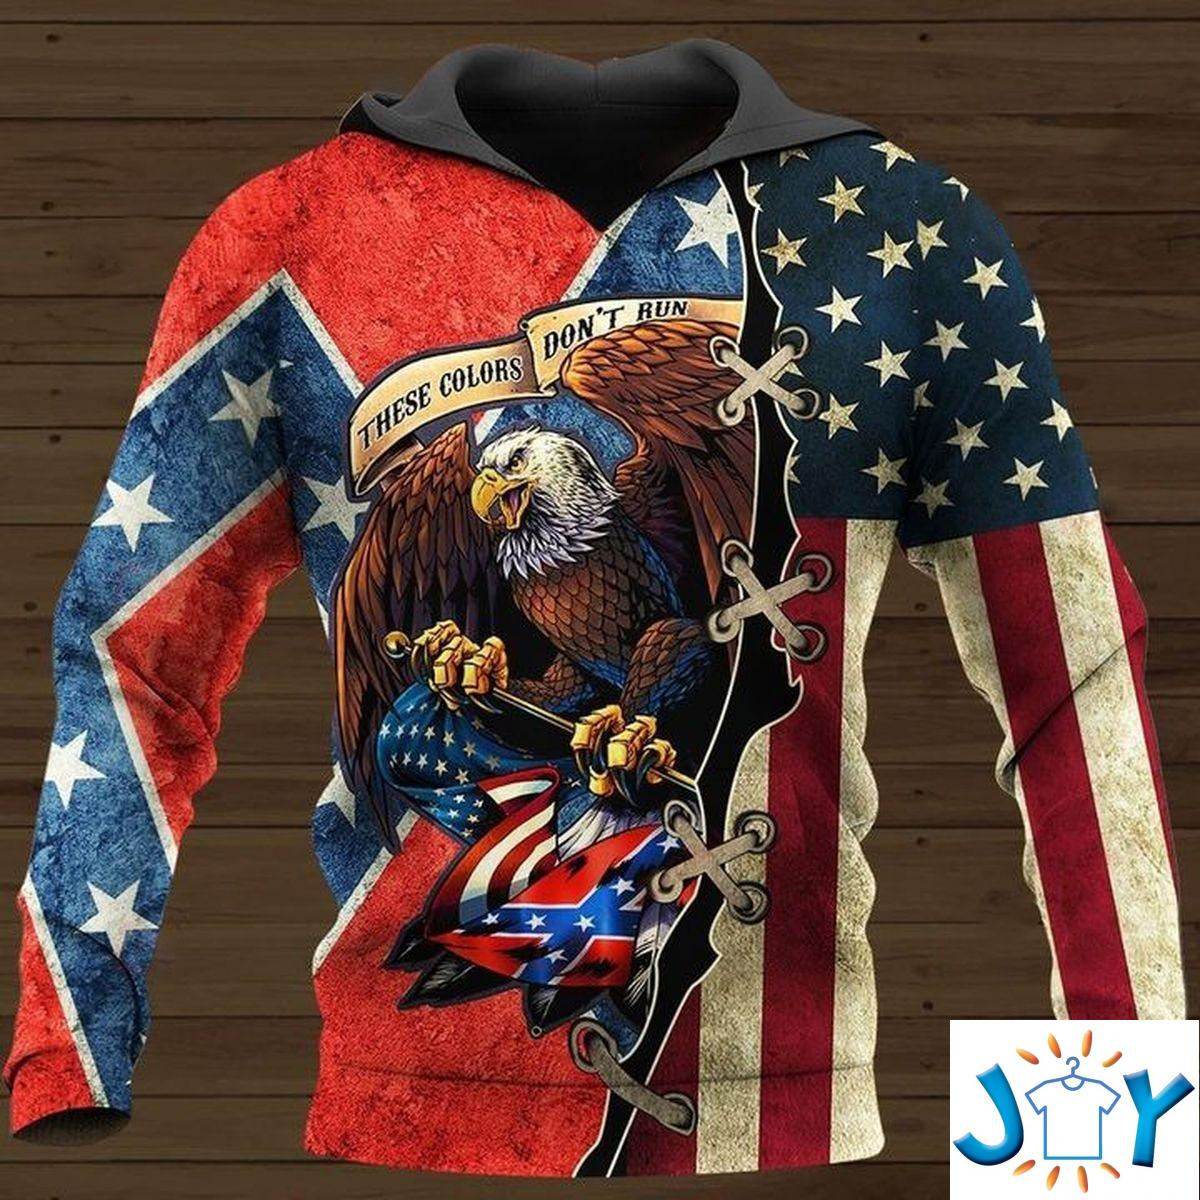 These Colors Don'T Run They Reload Confederate Flag 3D All Over Printed Hoodies, Zip Hoodies, Fleece Hoodies